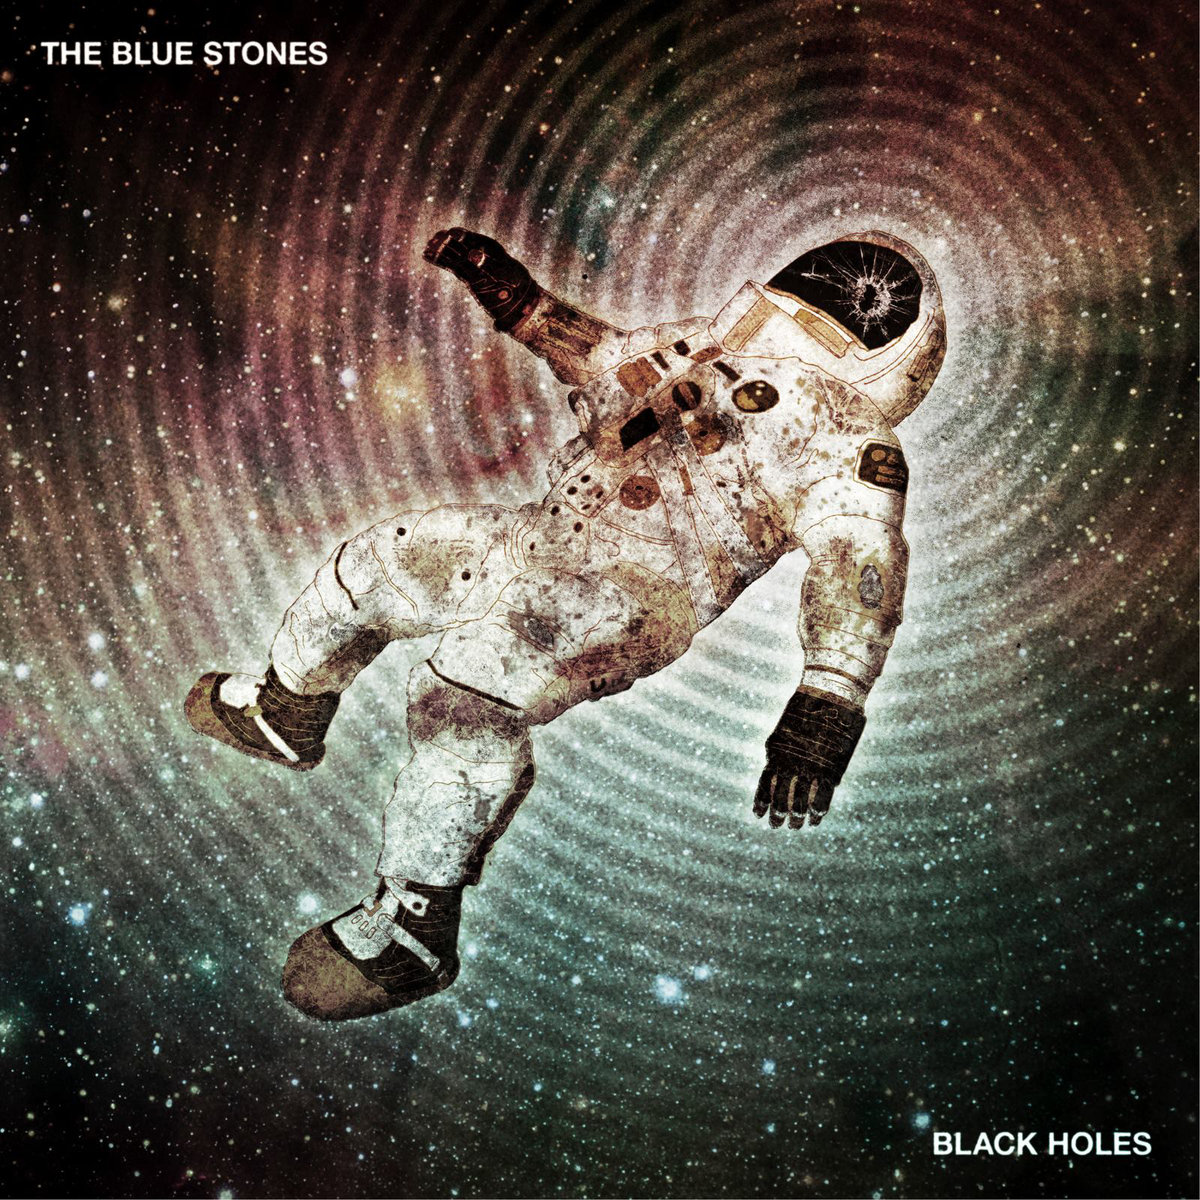 The Blue Stones - Airlock @ 'BLACK HOLES' album (alternative, blues)